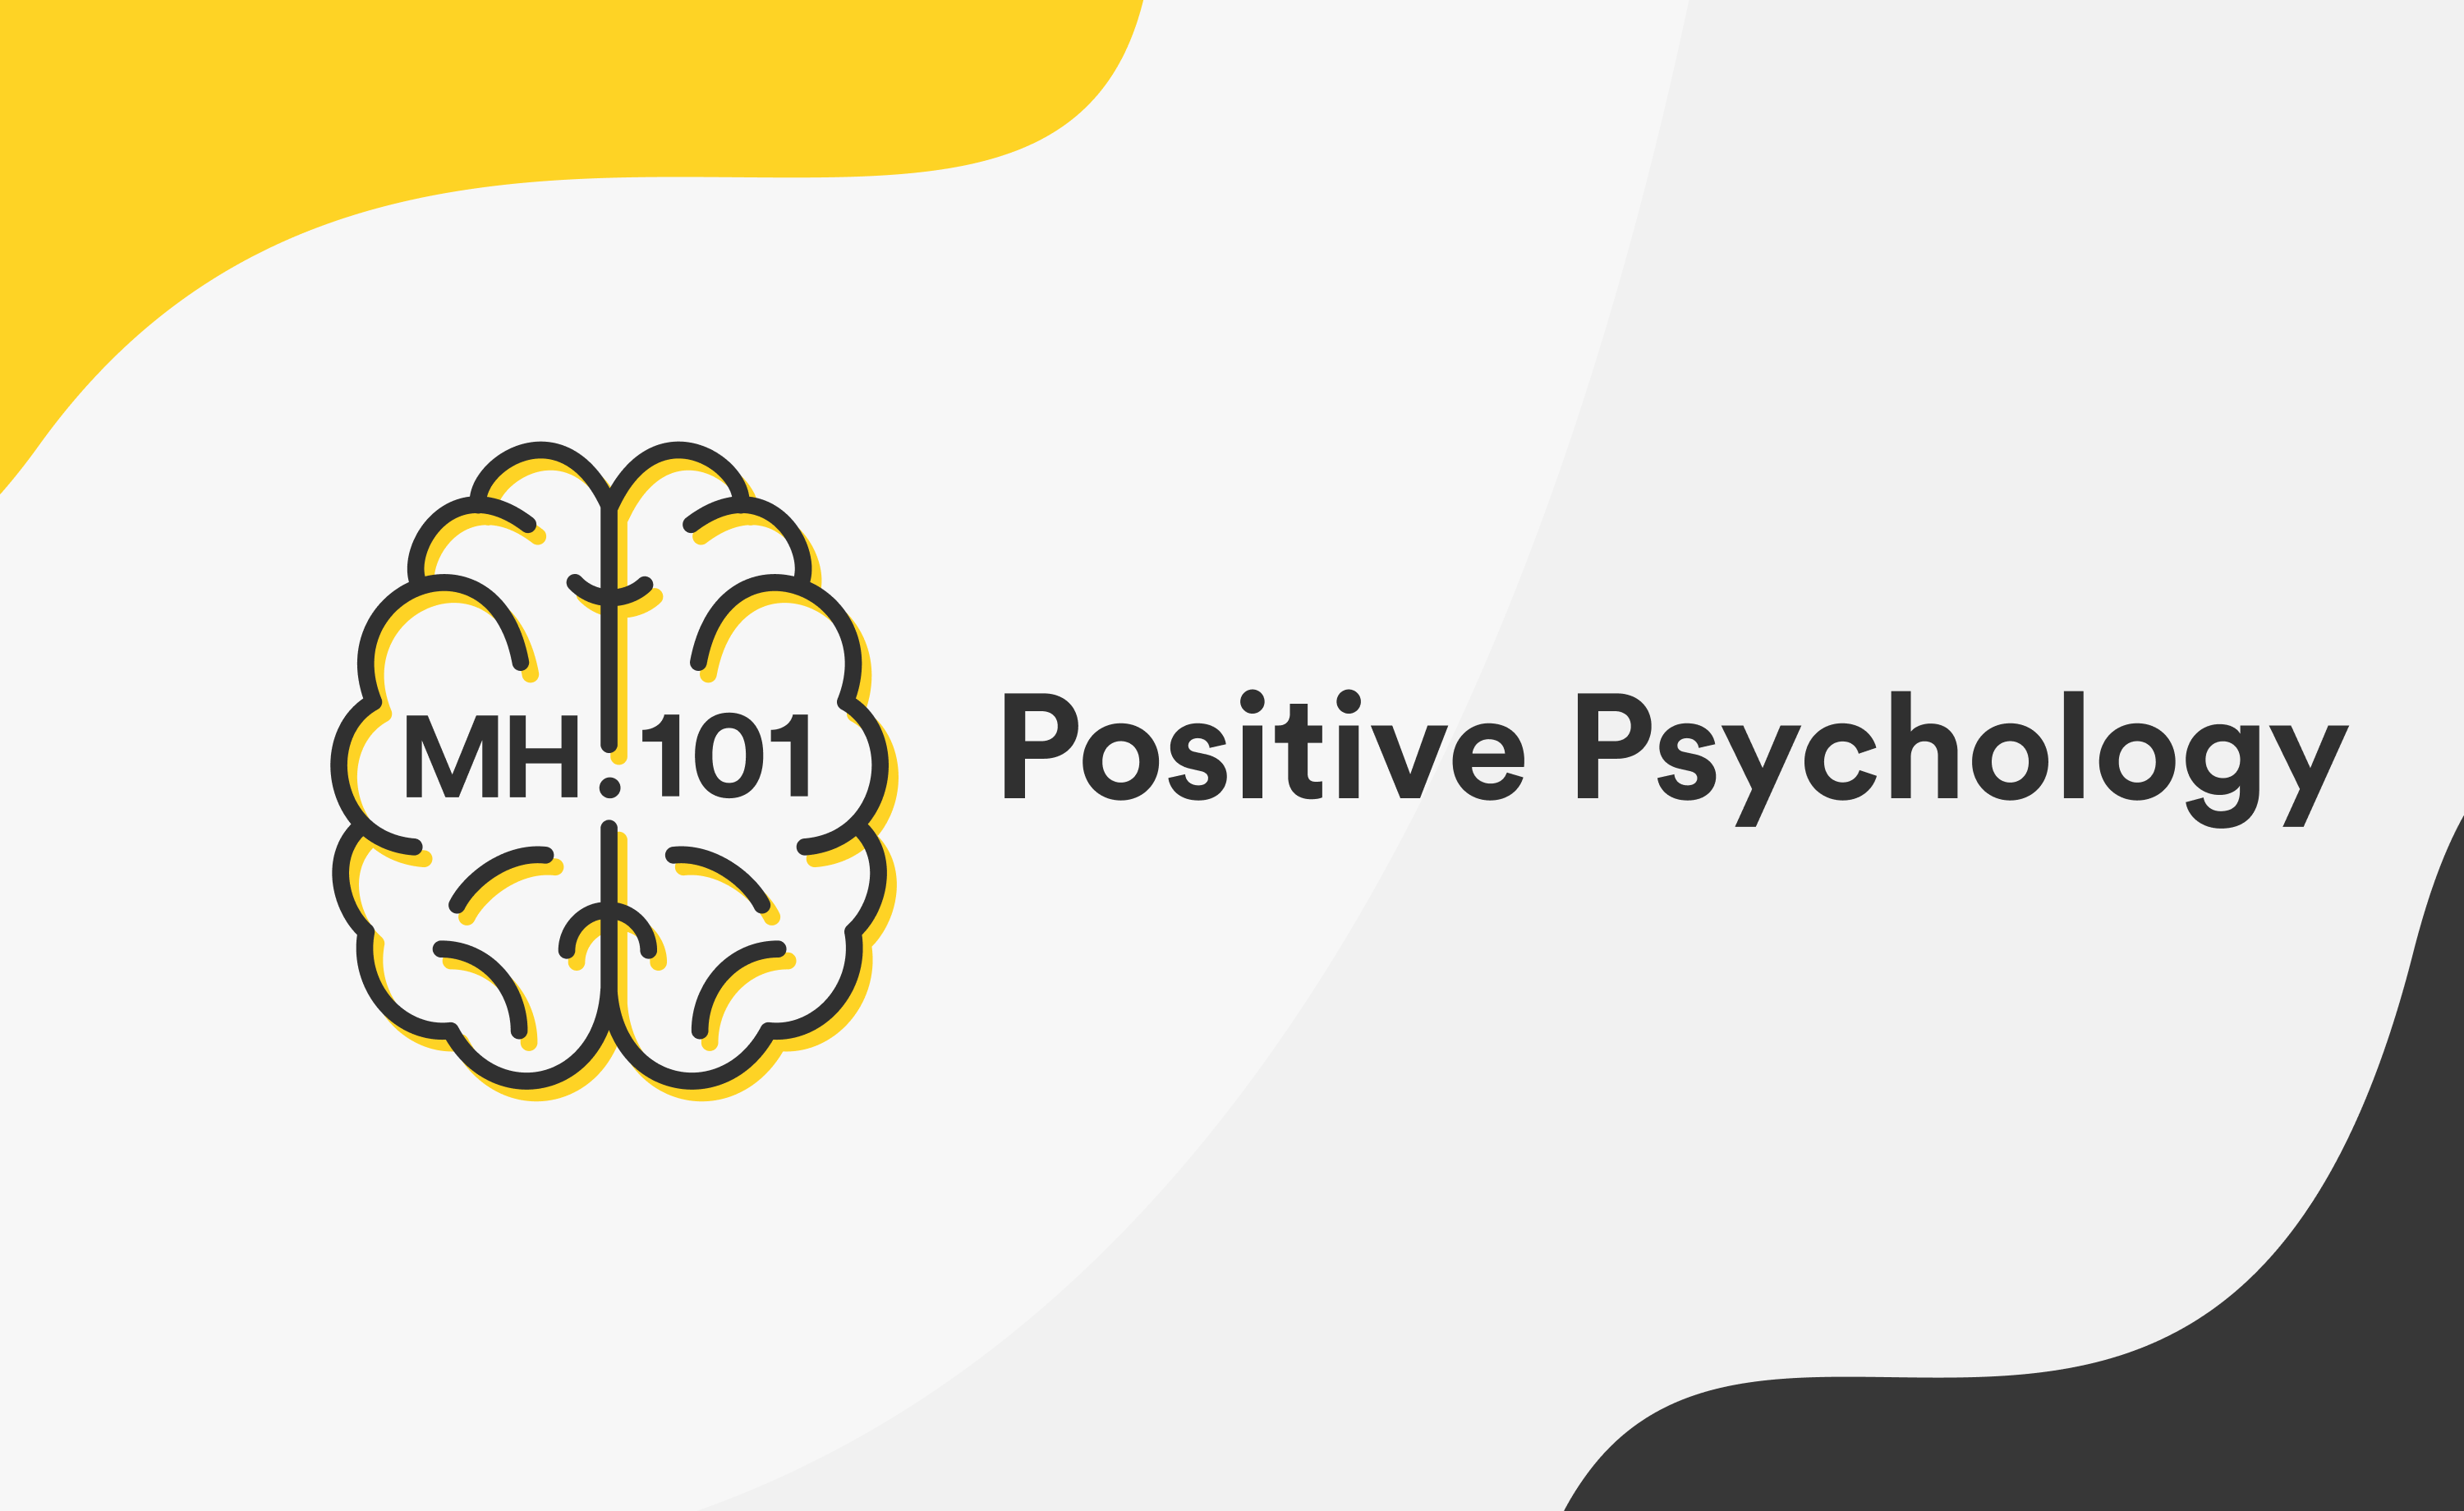 #2 Positive Psychology